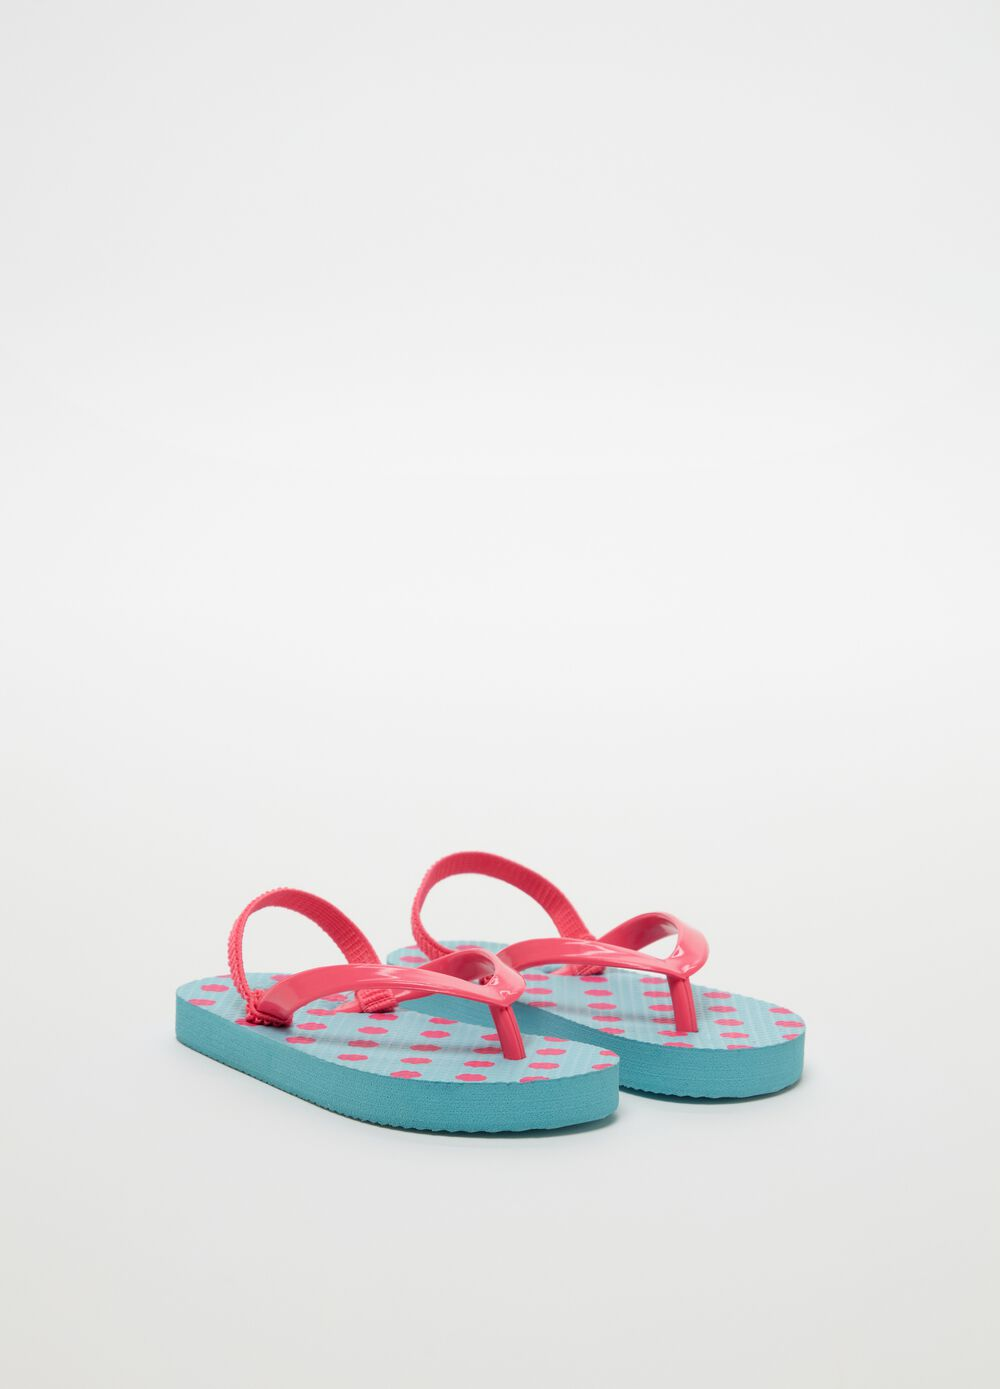 Thong sandals with polka dot pattern and laces